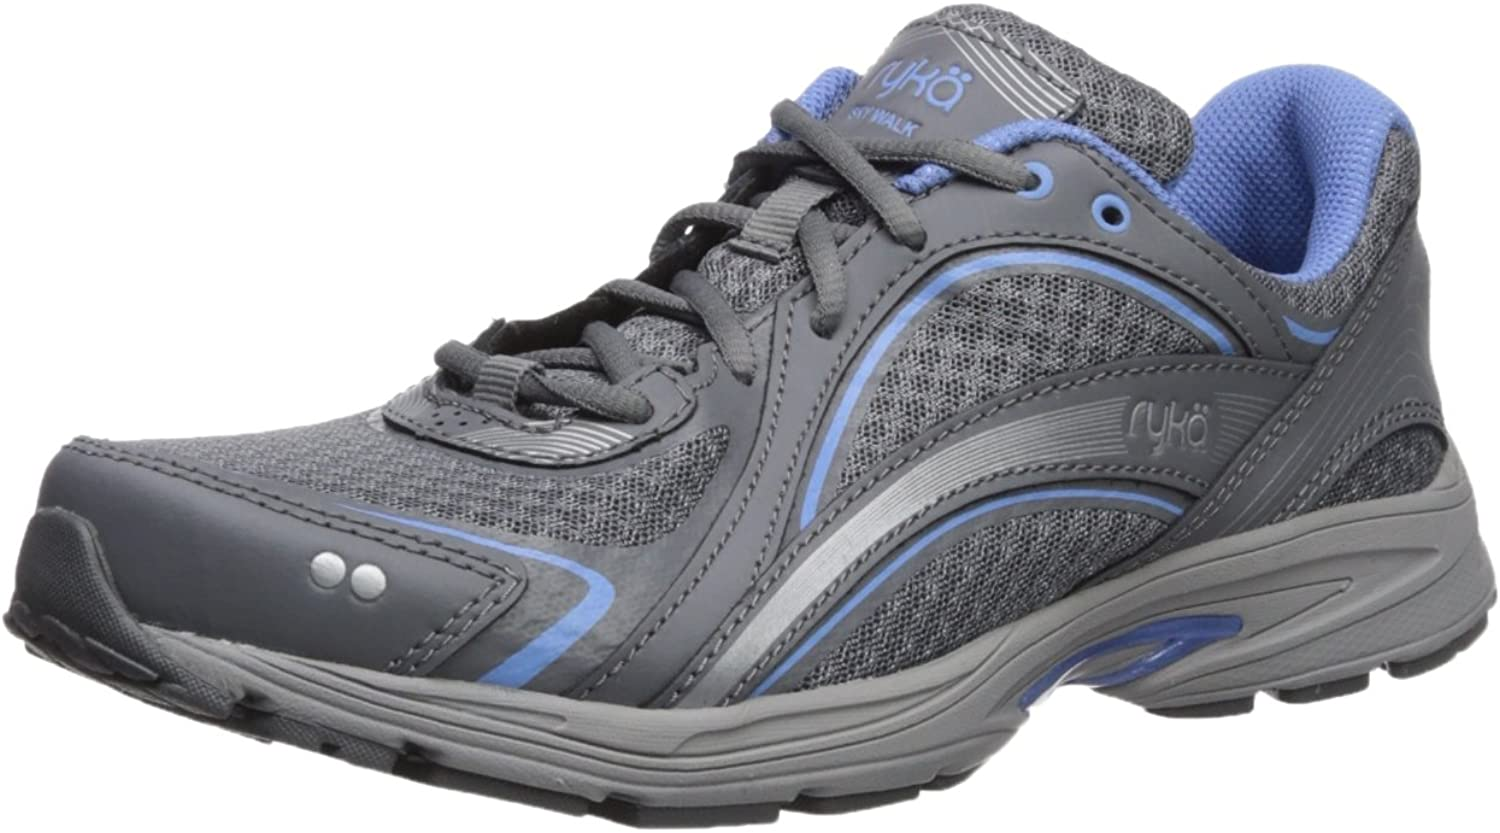 Ryka Women's Sky Walking shoes